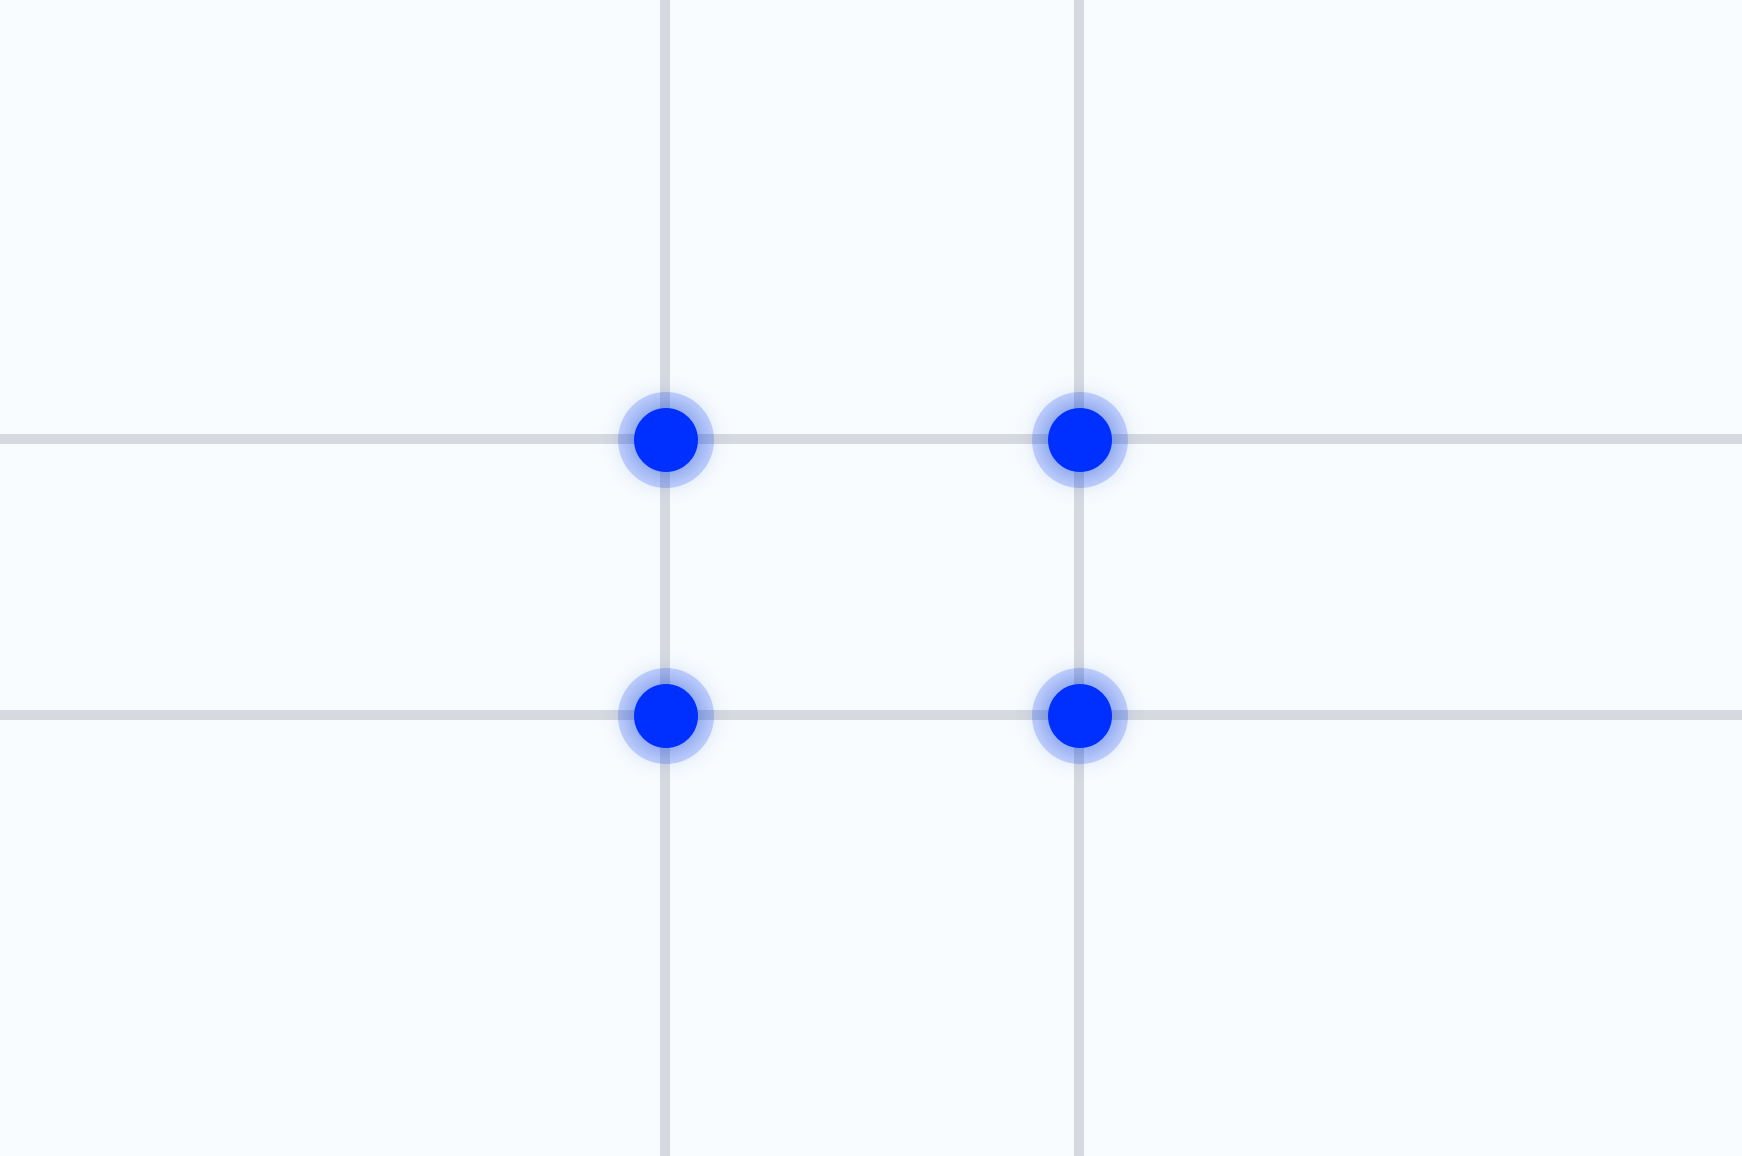 The Phi grid, which helps to use the golden ratio in web design, with the focus points marked.